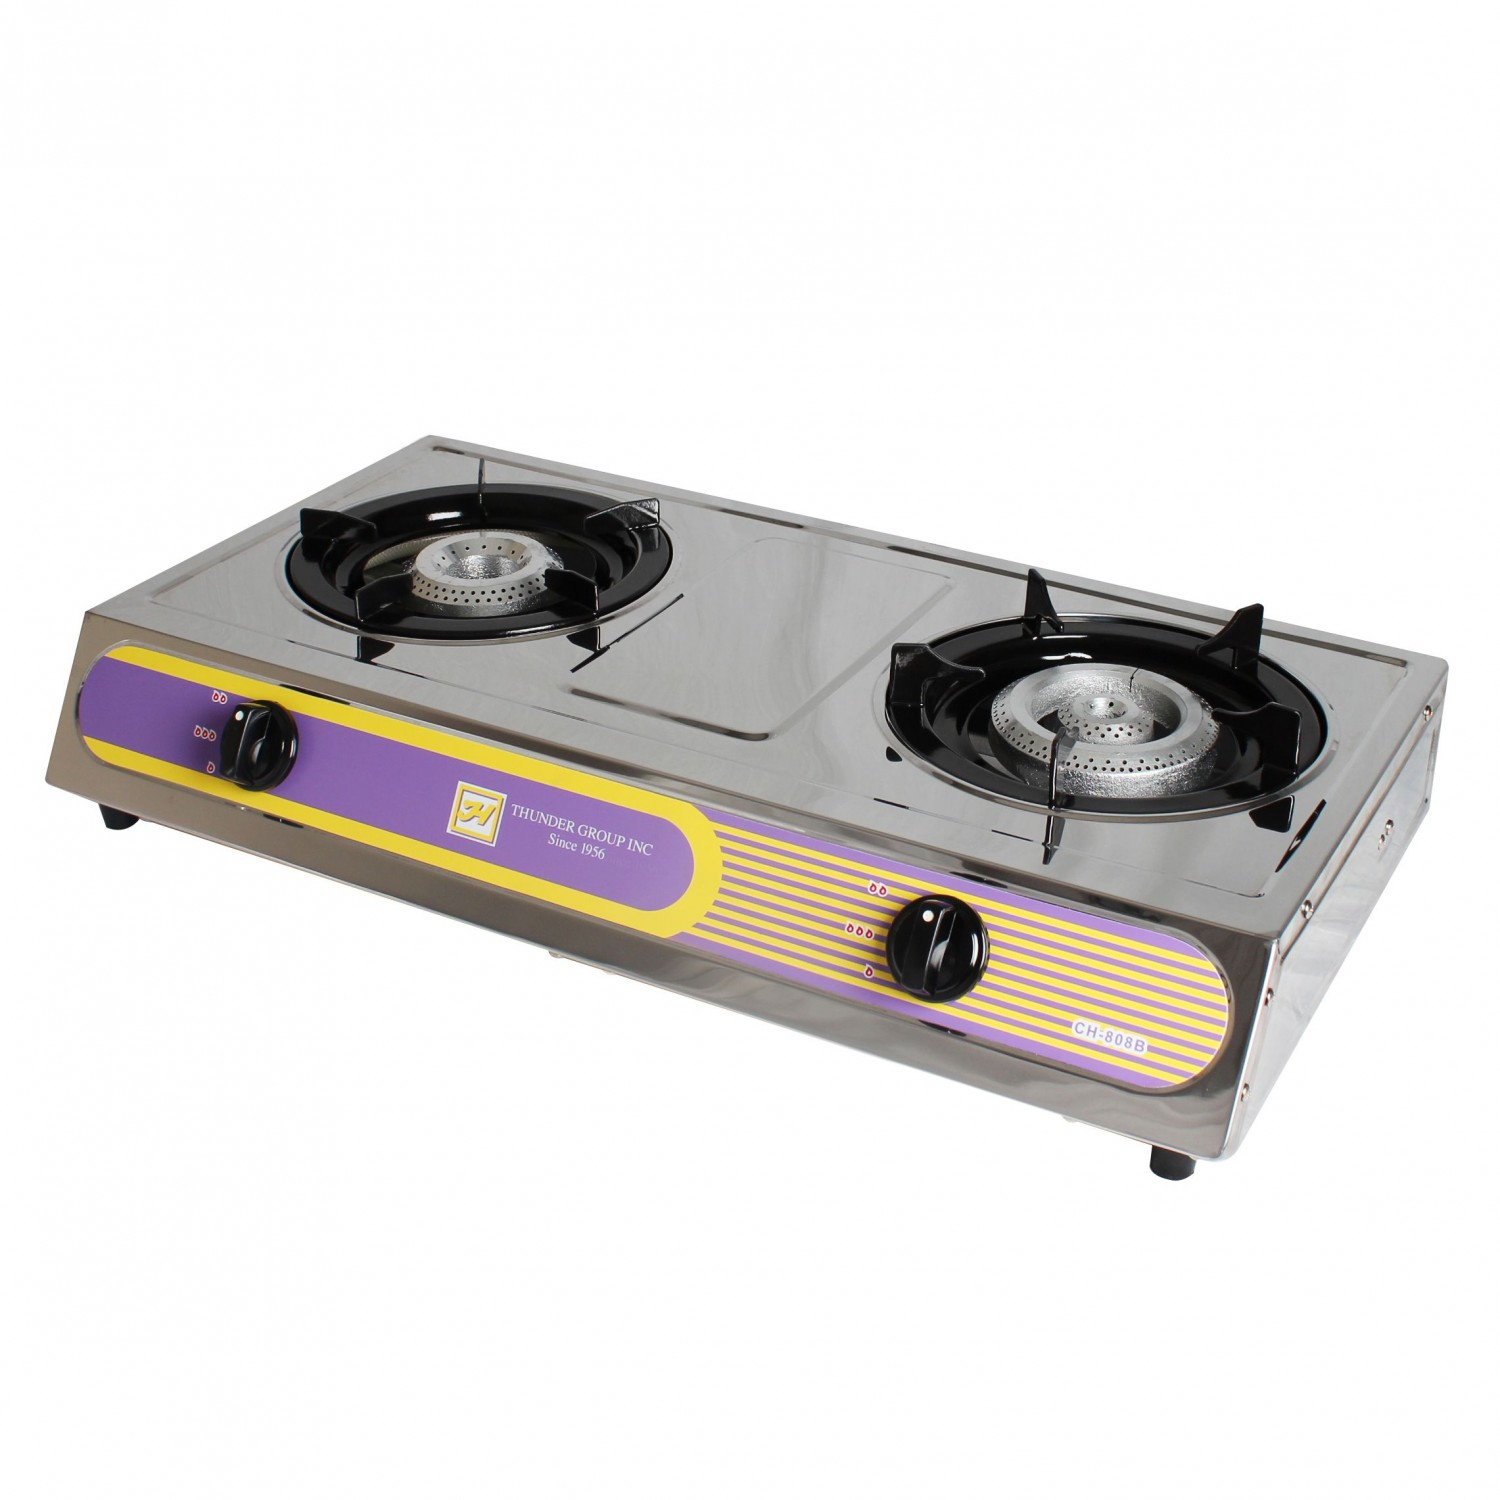 Countertop Stove Prices : Thunder Group SLST002 Gas Double Burner Countertop Hot Plate